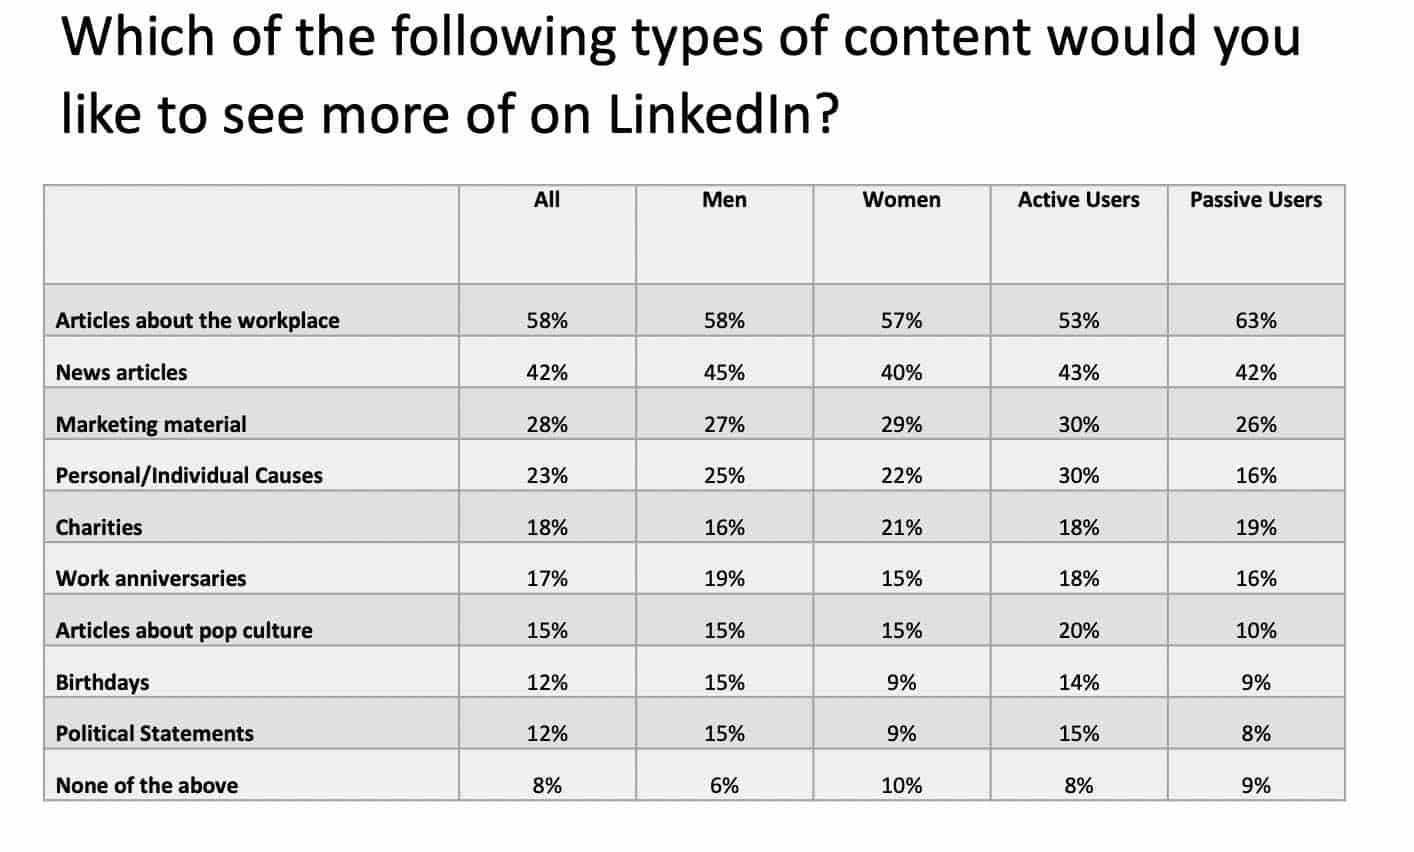 Linkedin Users Survey What would like to see more of